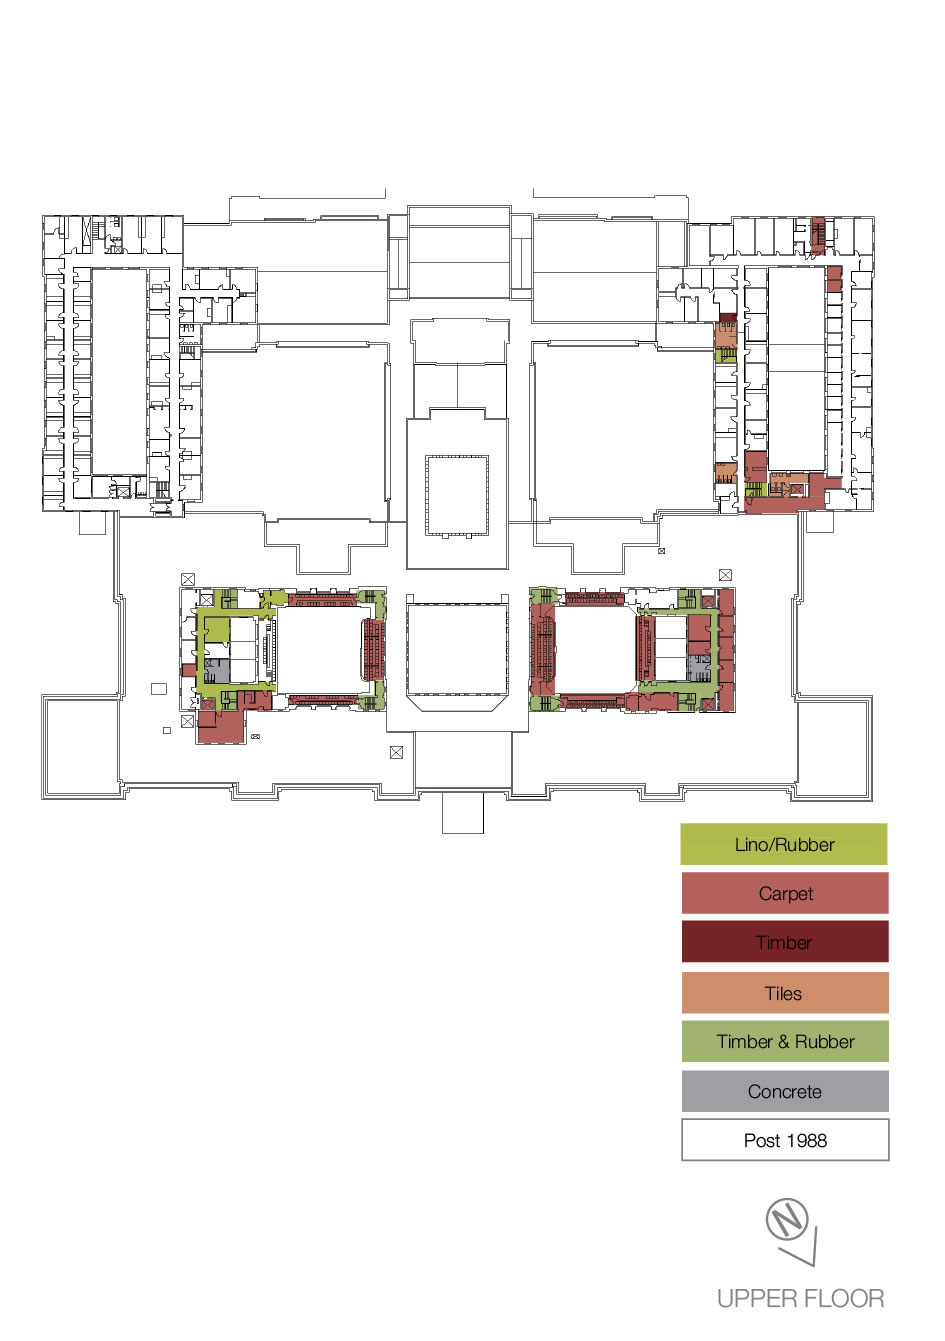 Floorplan showing the types of heritage floor coverings on the upper floor.